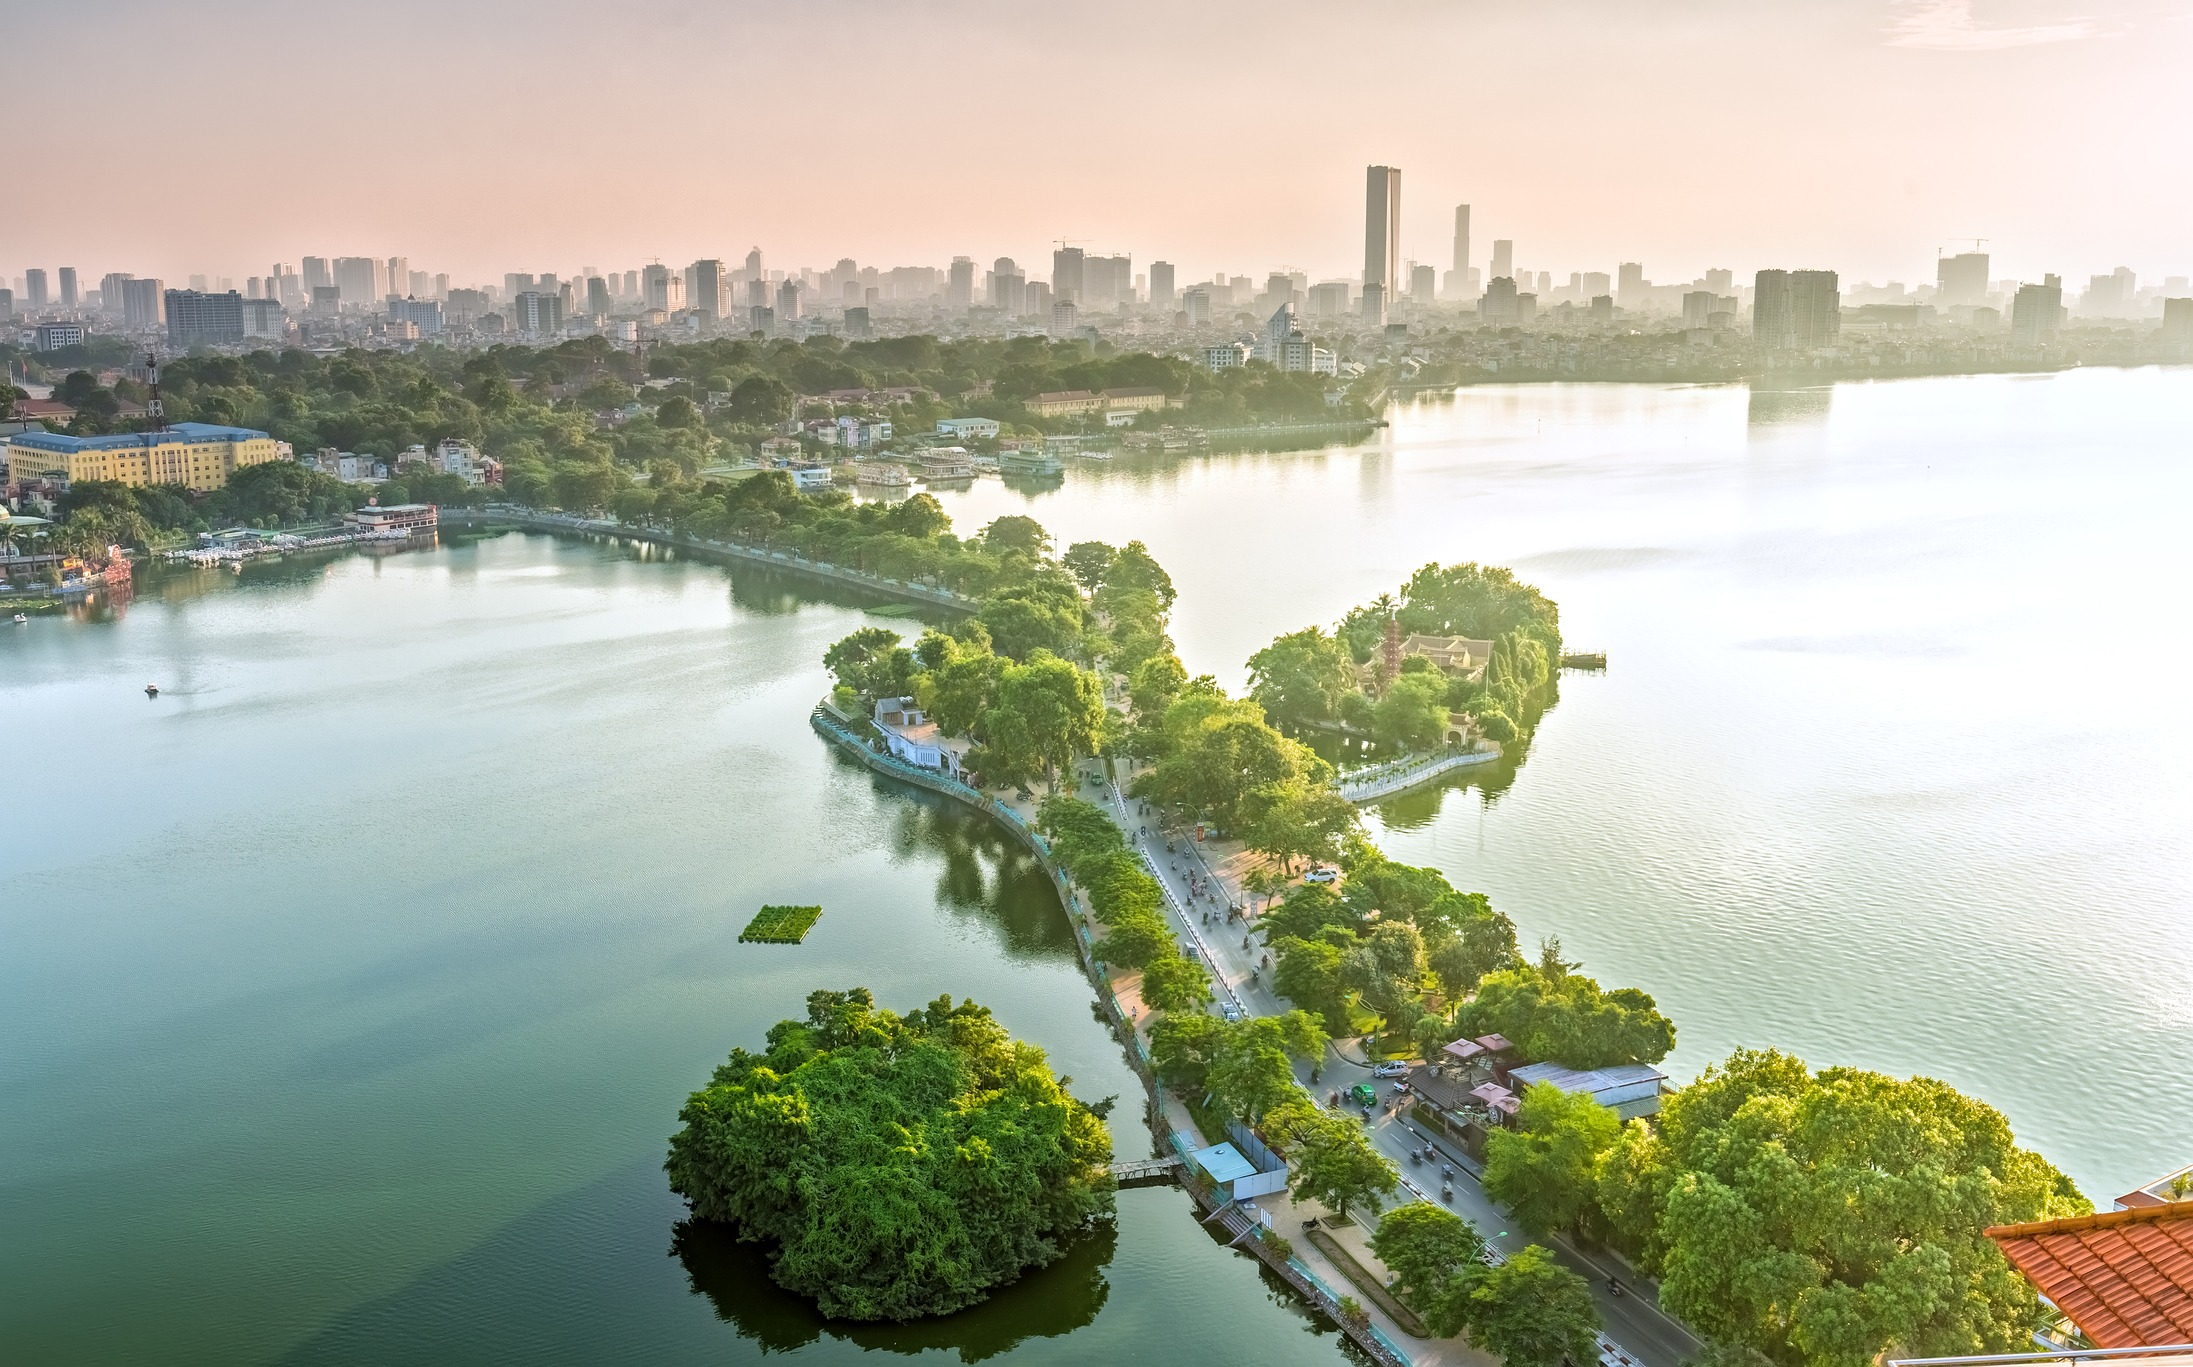 The Next Stage of the Korean Peace Process - Why Seoul Remains Optimistic After Hanoi